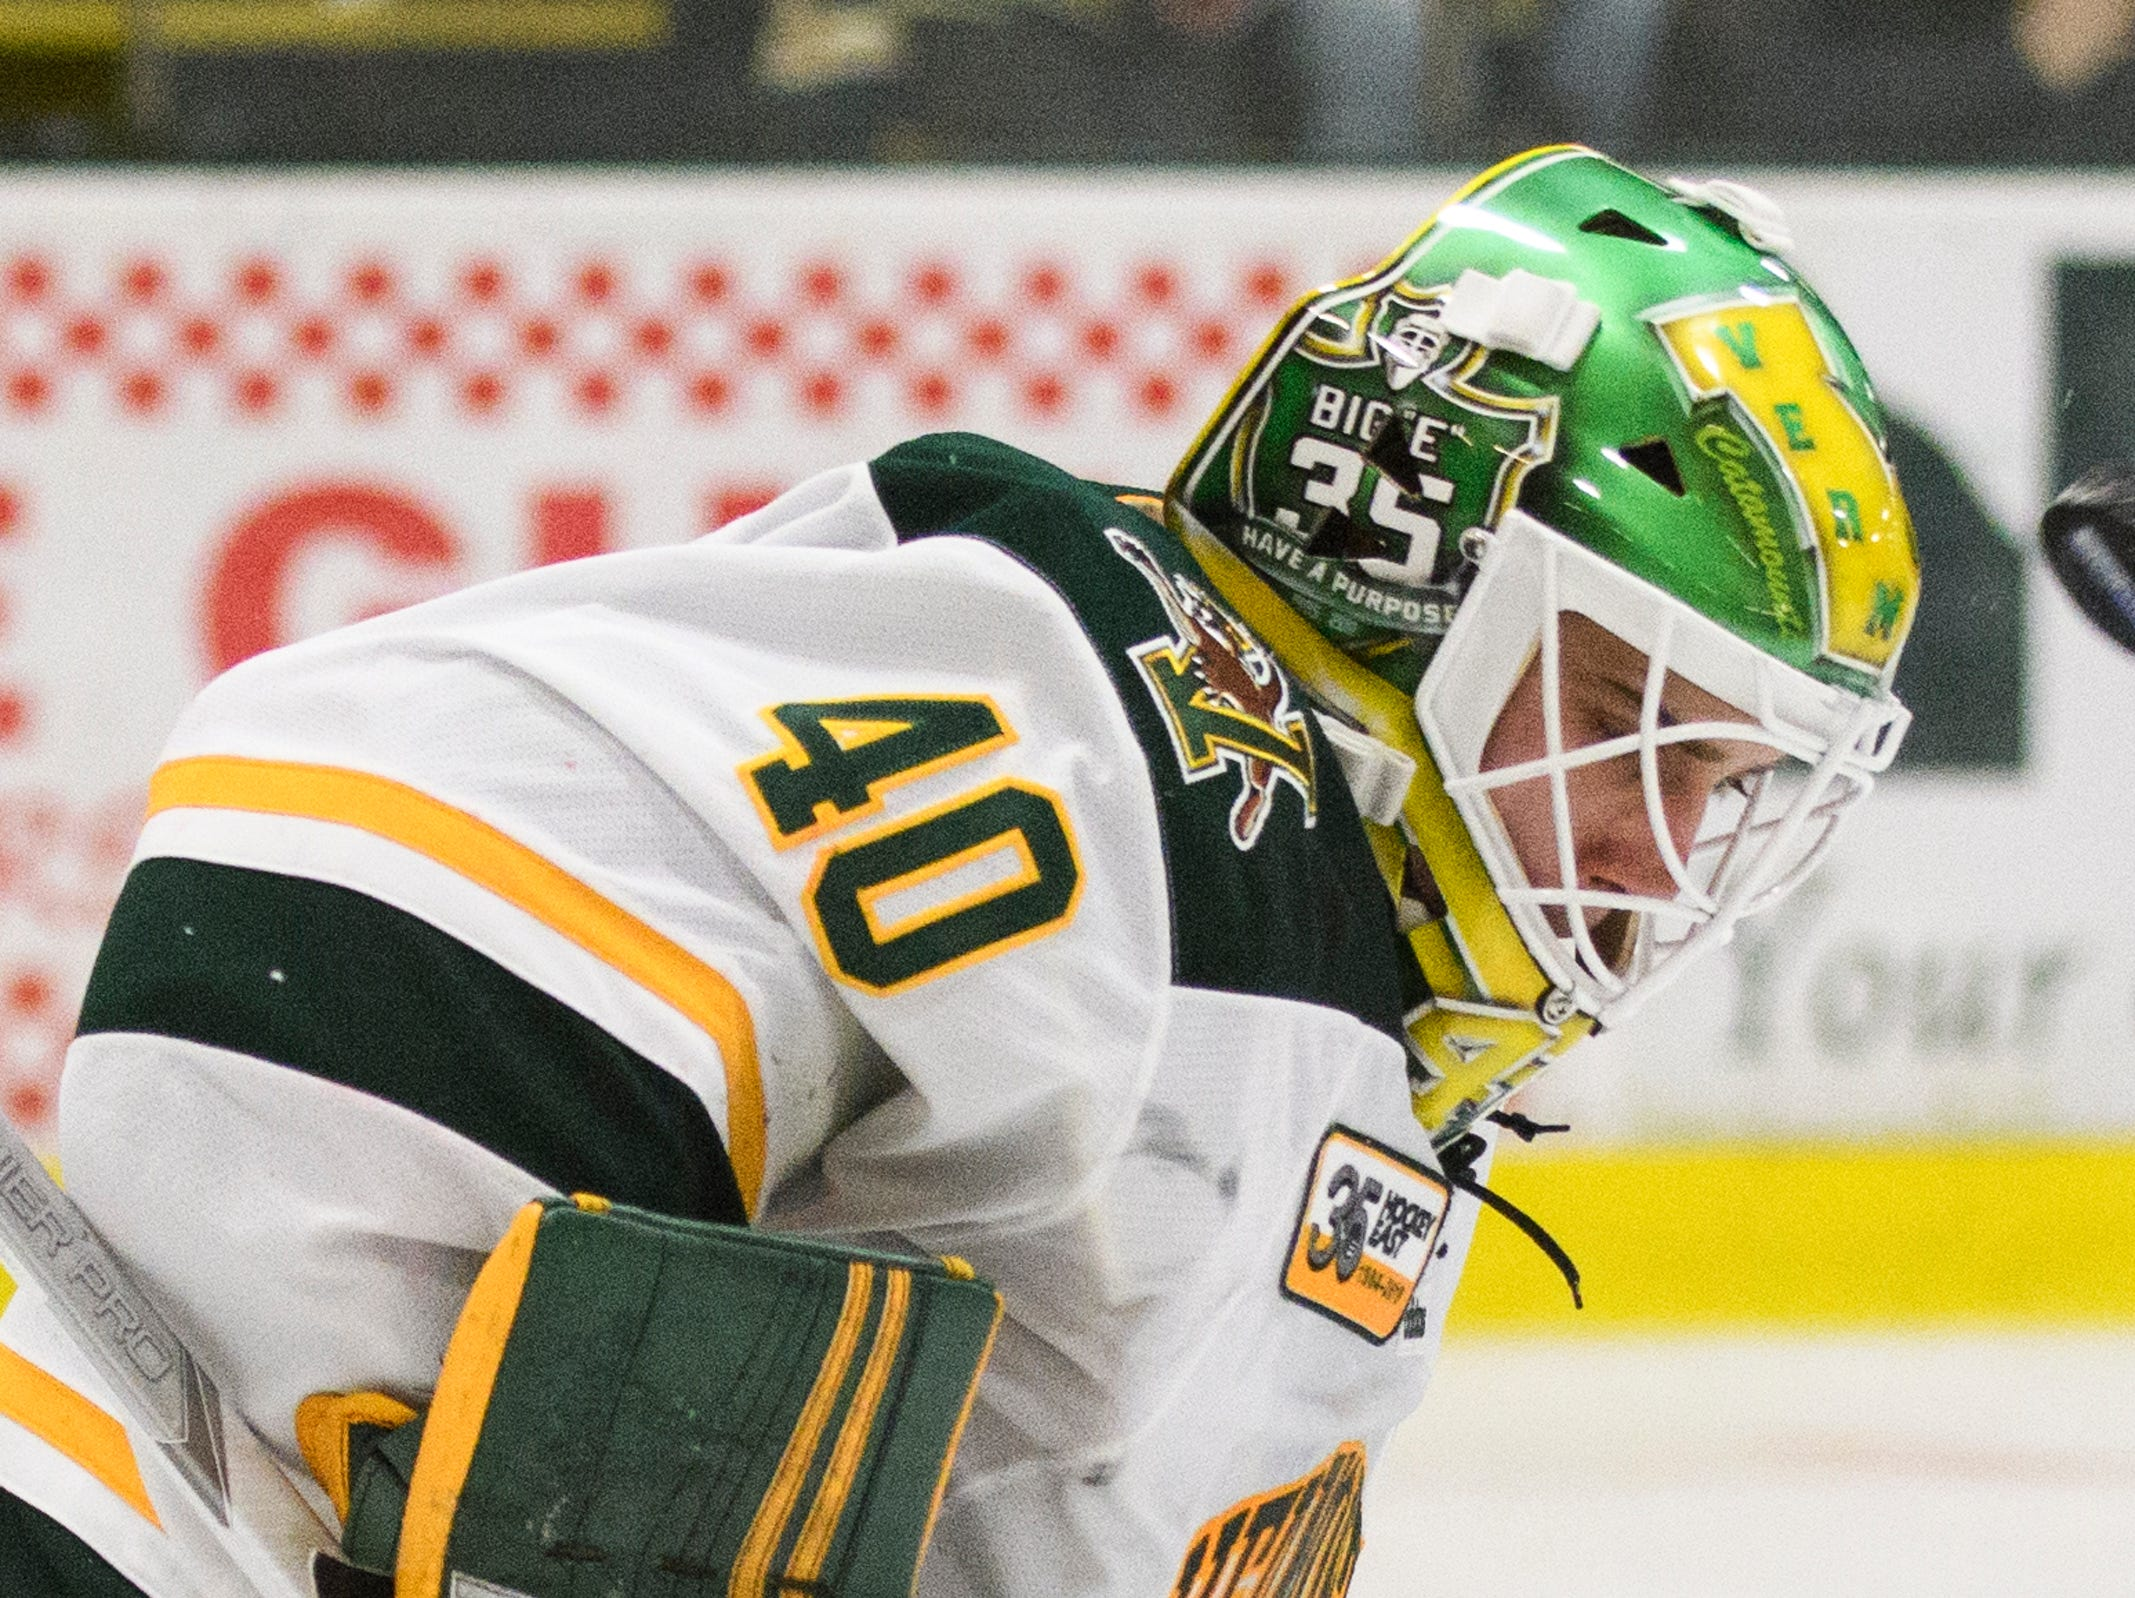 Vermont goalie Stefanos Lekkas (40) makes a save during the men's hockey game between the Sacred Heart Pioneers and the Vermont Catamounts at Gutterson Field House on Friday night January 4, 2019 in Burlington.